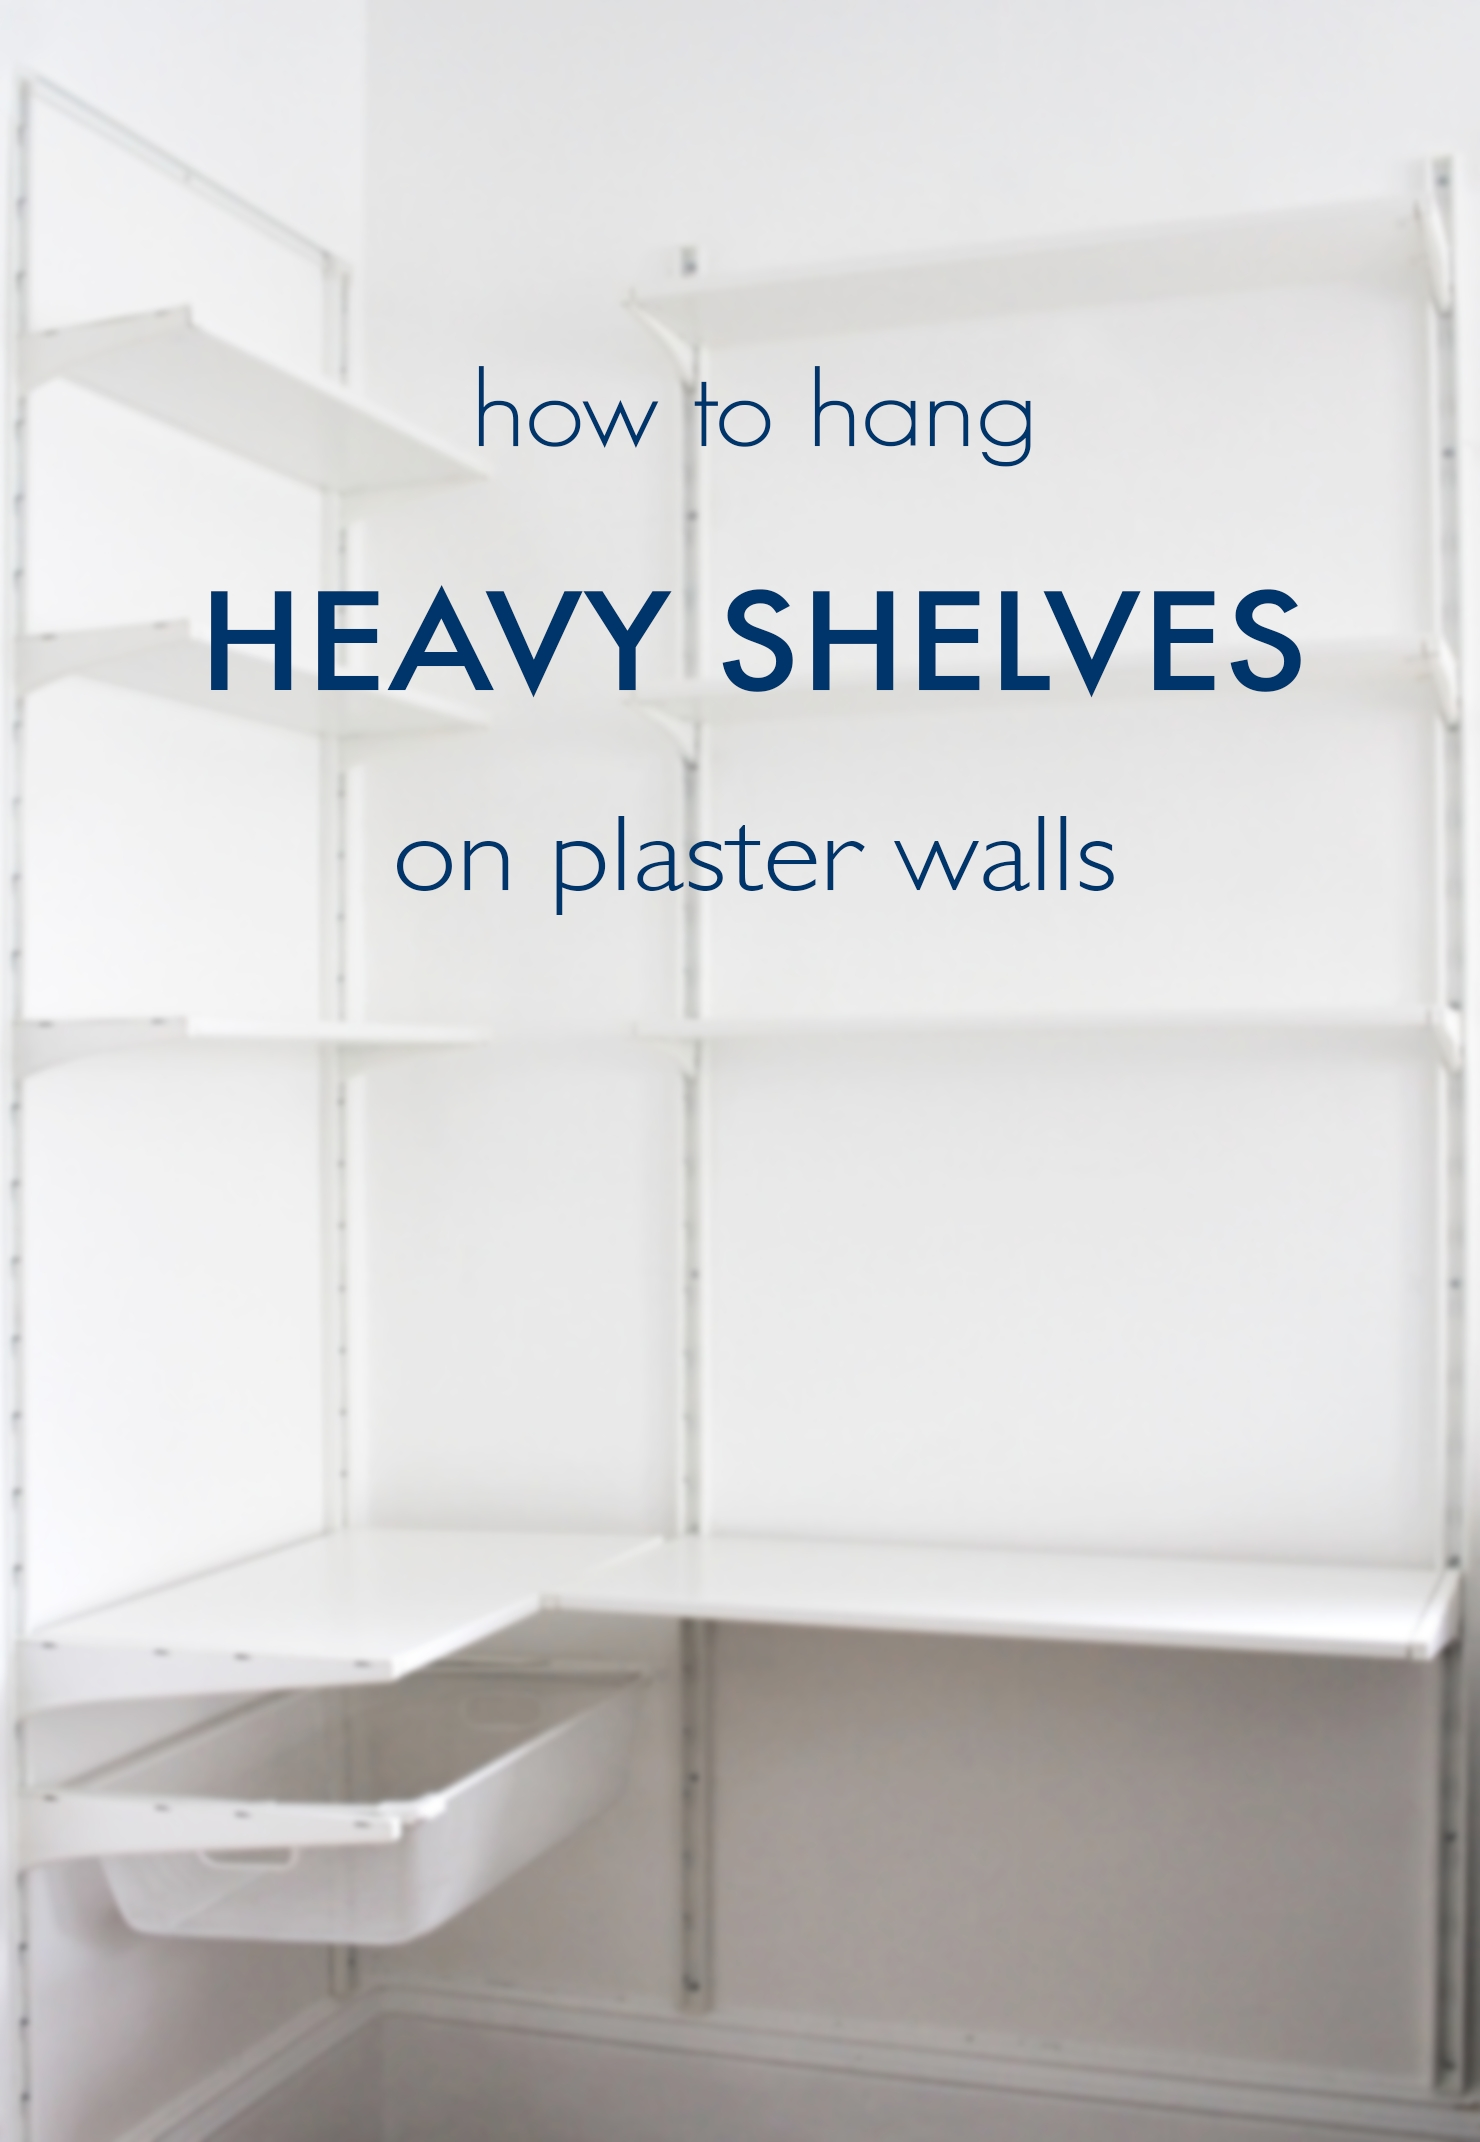 How To Hang Heavy Shelves On Horsehair Plaster Walls Idle Hands Awake Throughout Shelves On Plasterboard Walls (Image 11 of 15)